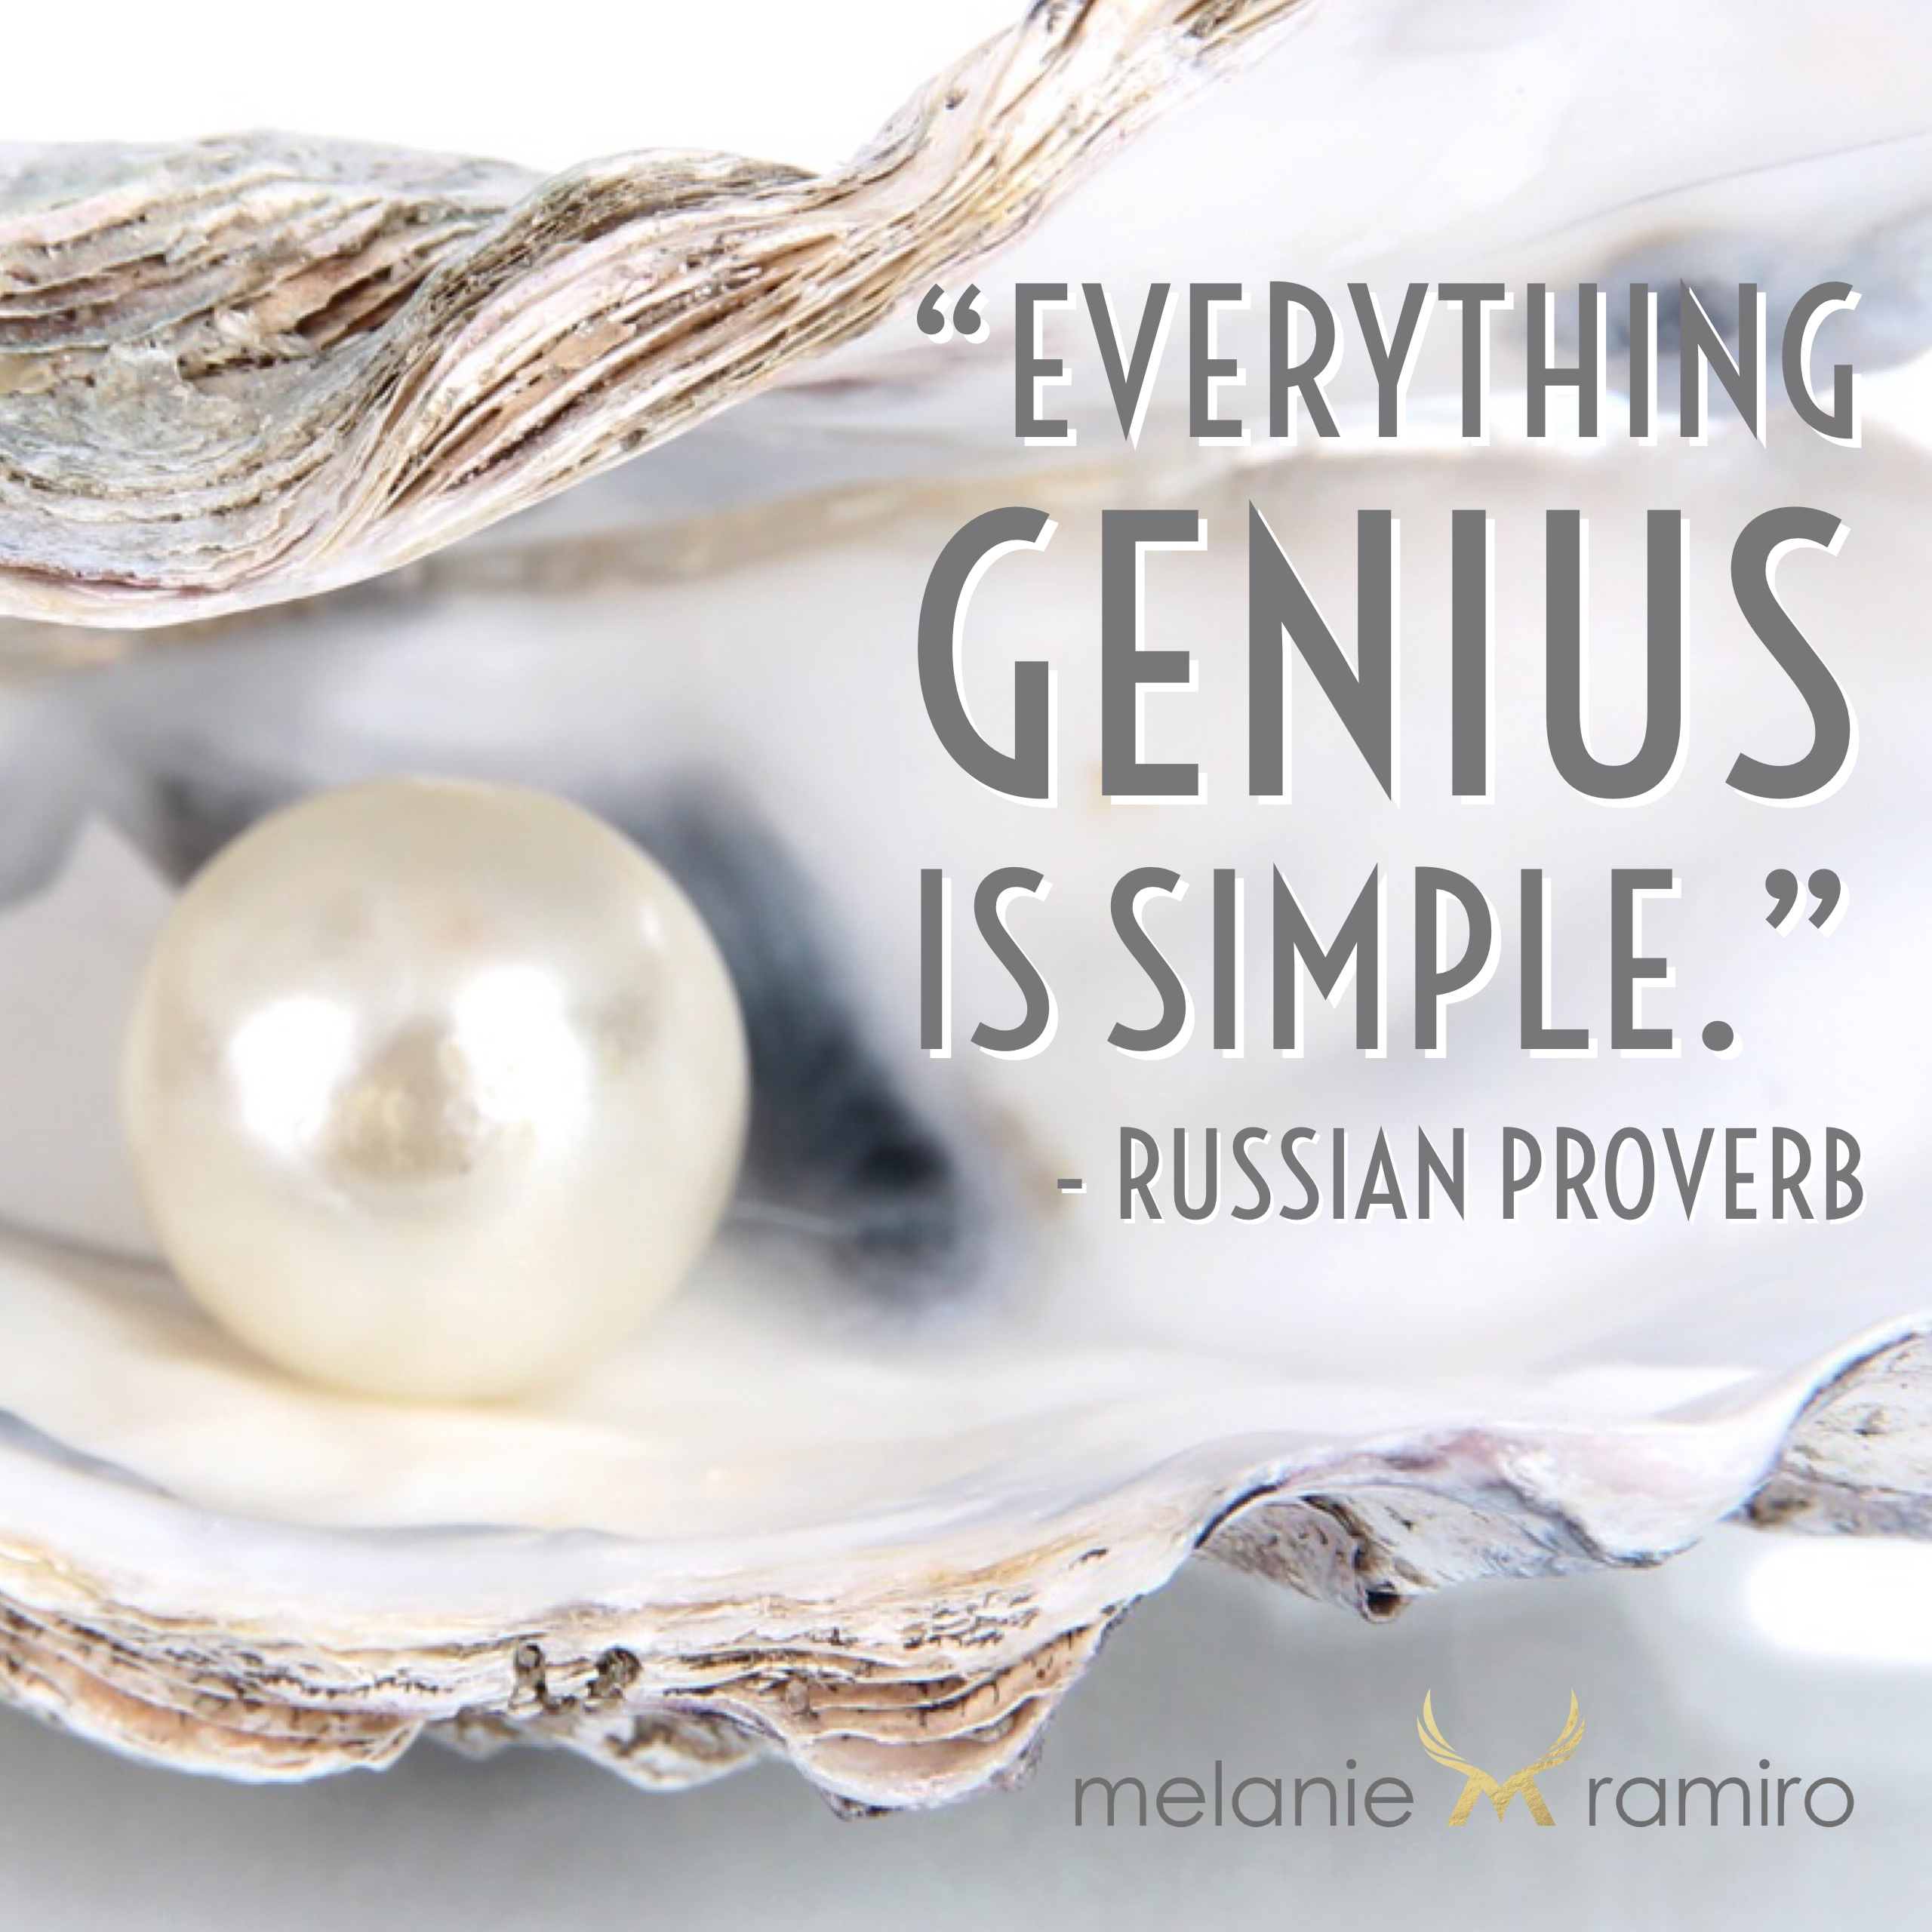 Everything genius is simple